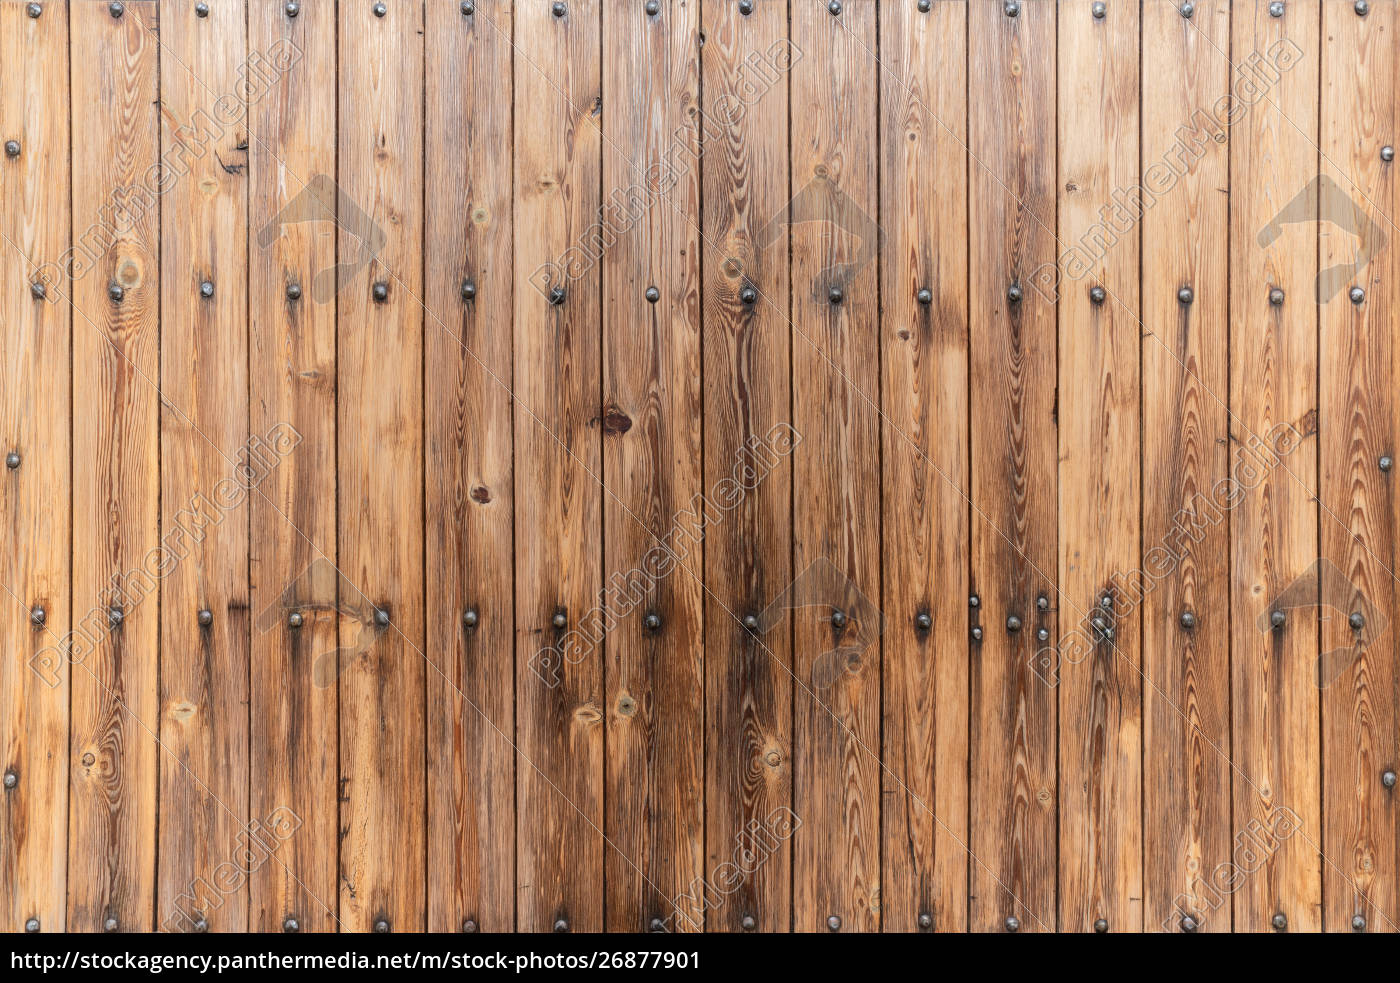 Brown Rustic Wood Wall Covering Made Of Vertical Stock Photo 26877901 Panthermedia Stock Agency